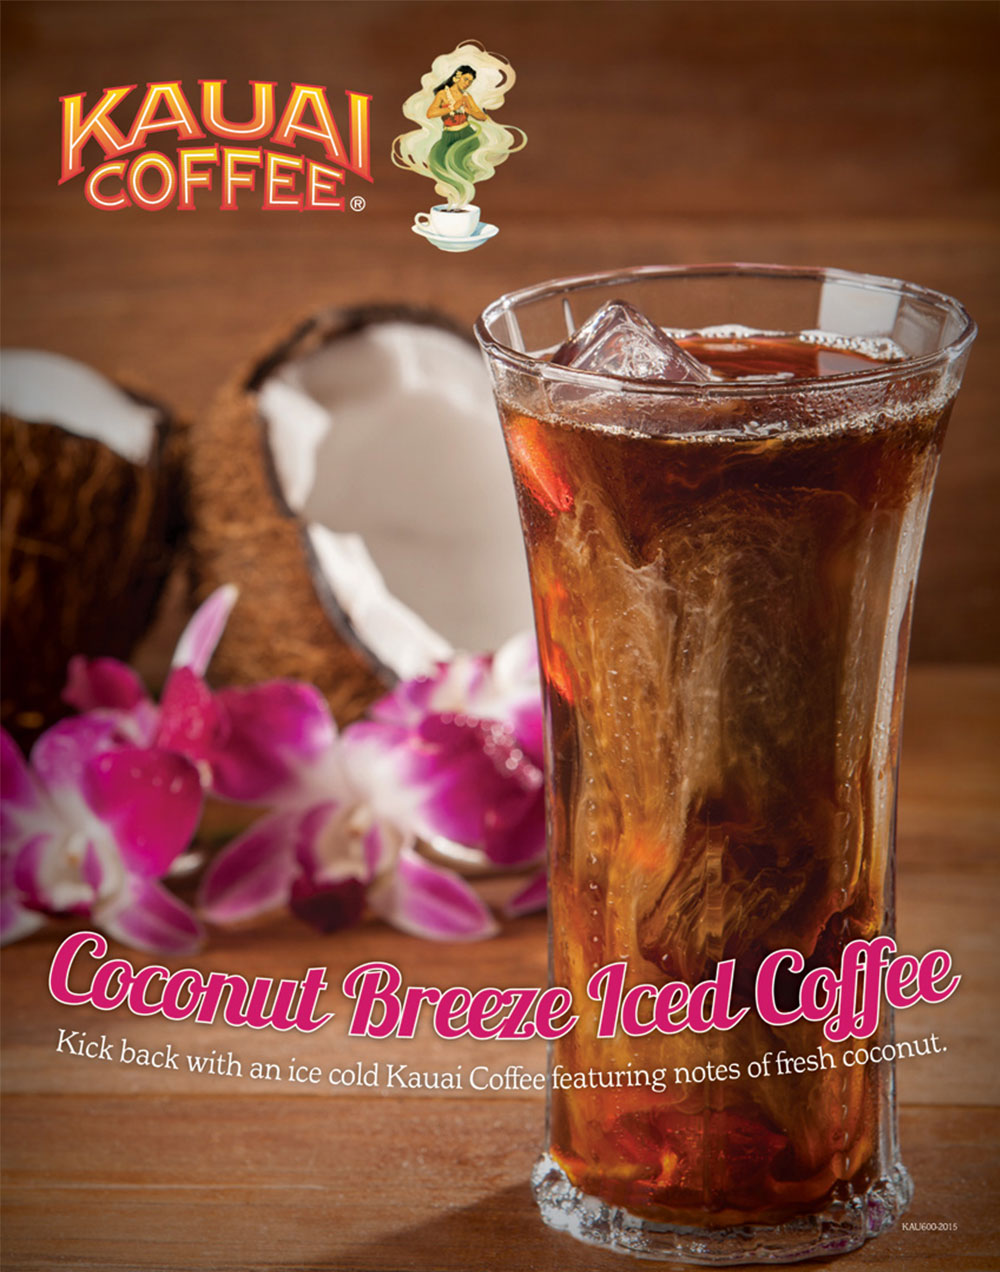 Kauai coconut breeze iced coffee poster